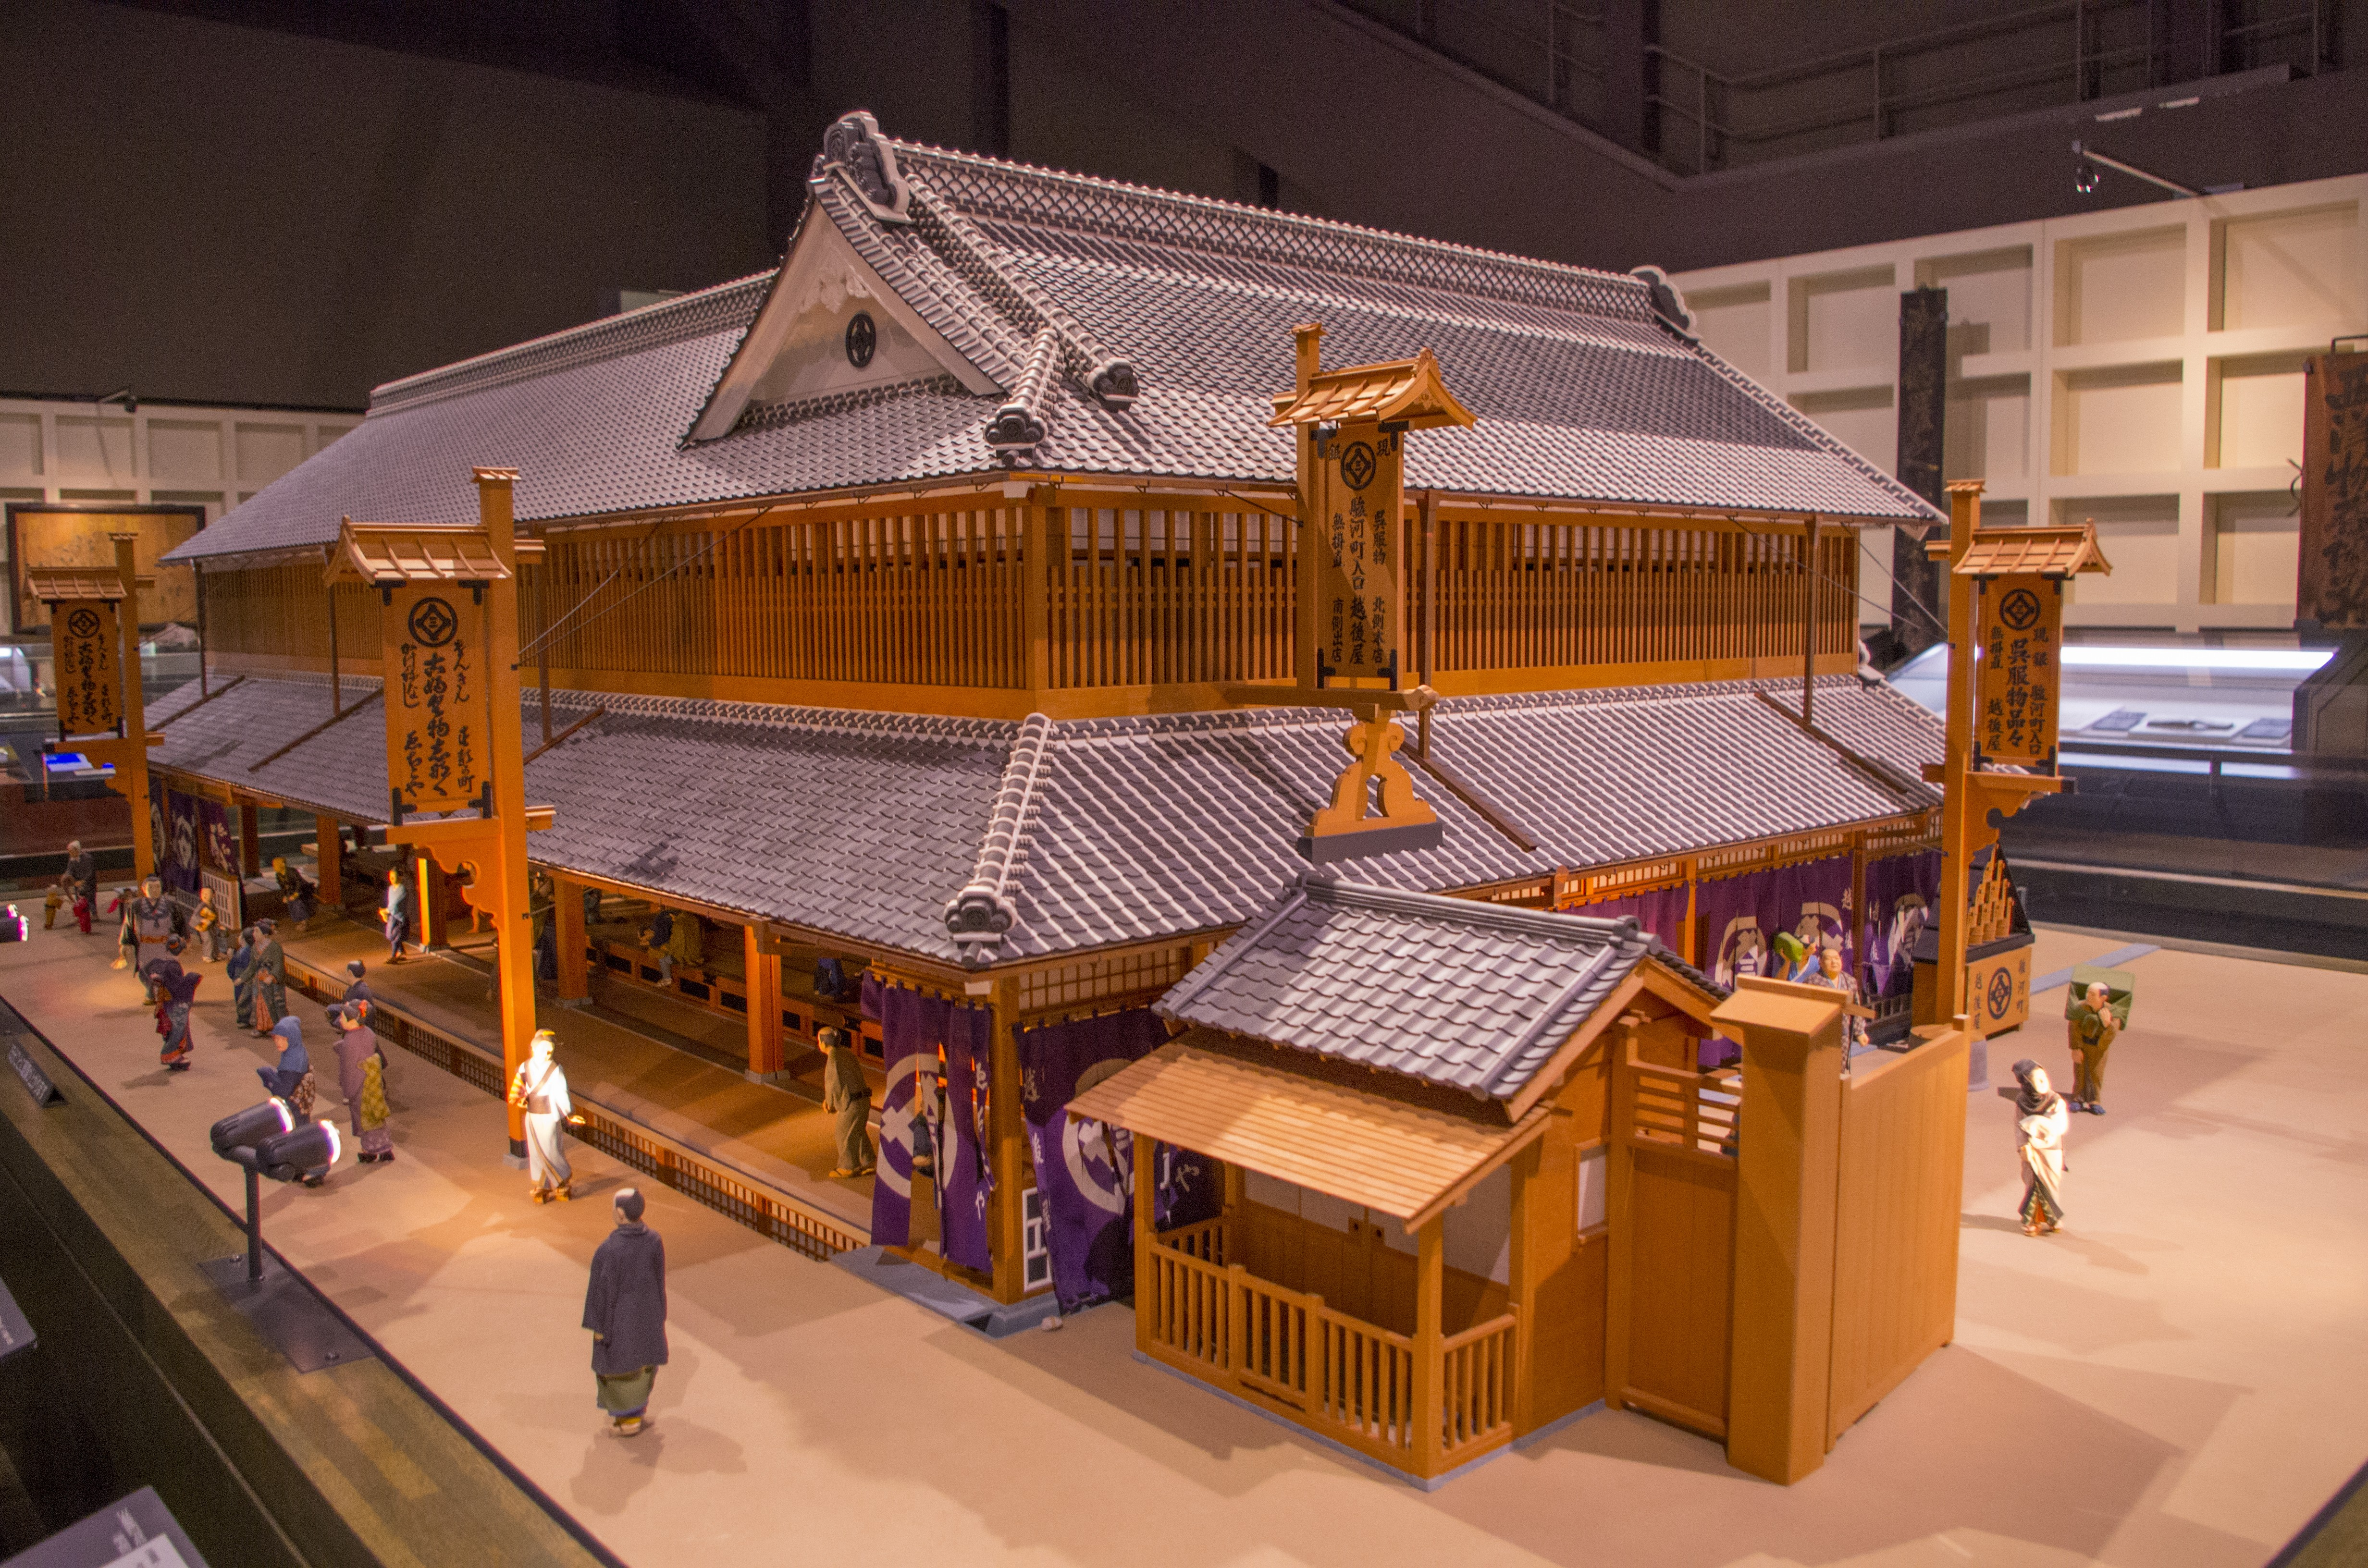 I can't remember what building's model is that supposed to be, but it is related to Edo times of Tokyo